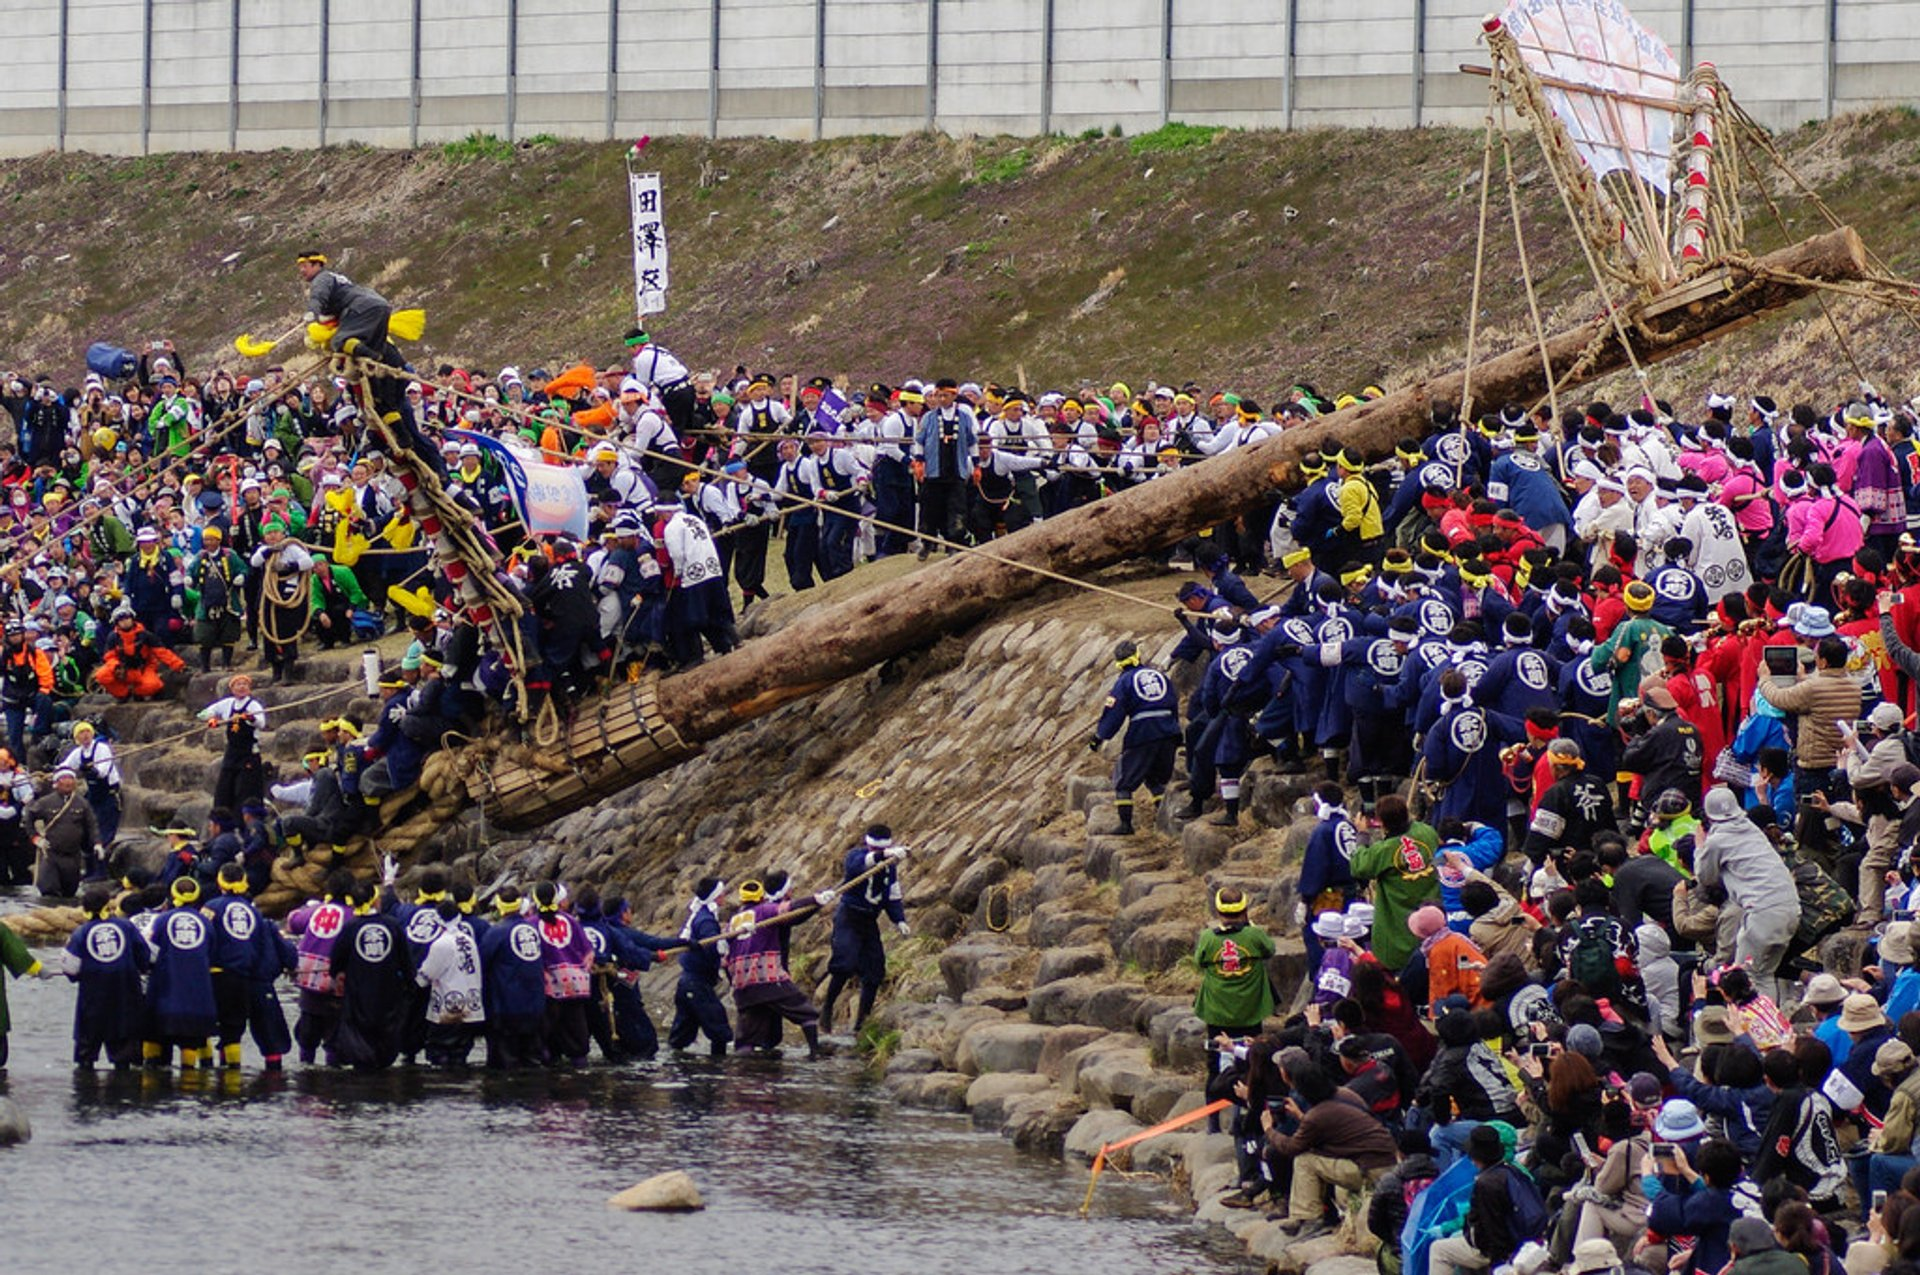 Onbashira Festival in Japan 2019 - Best Time